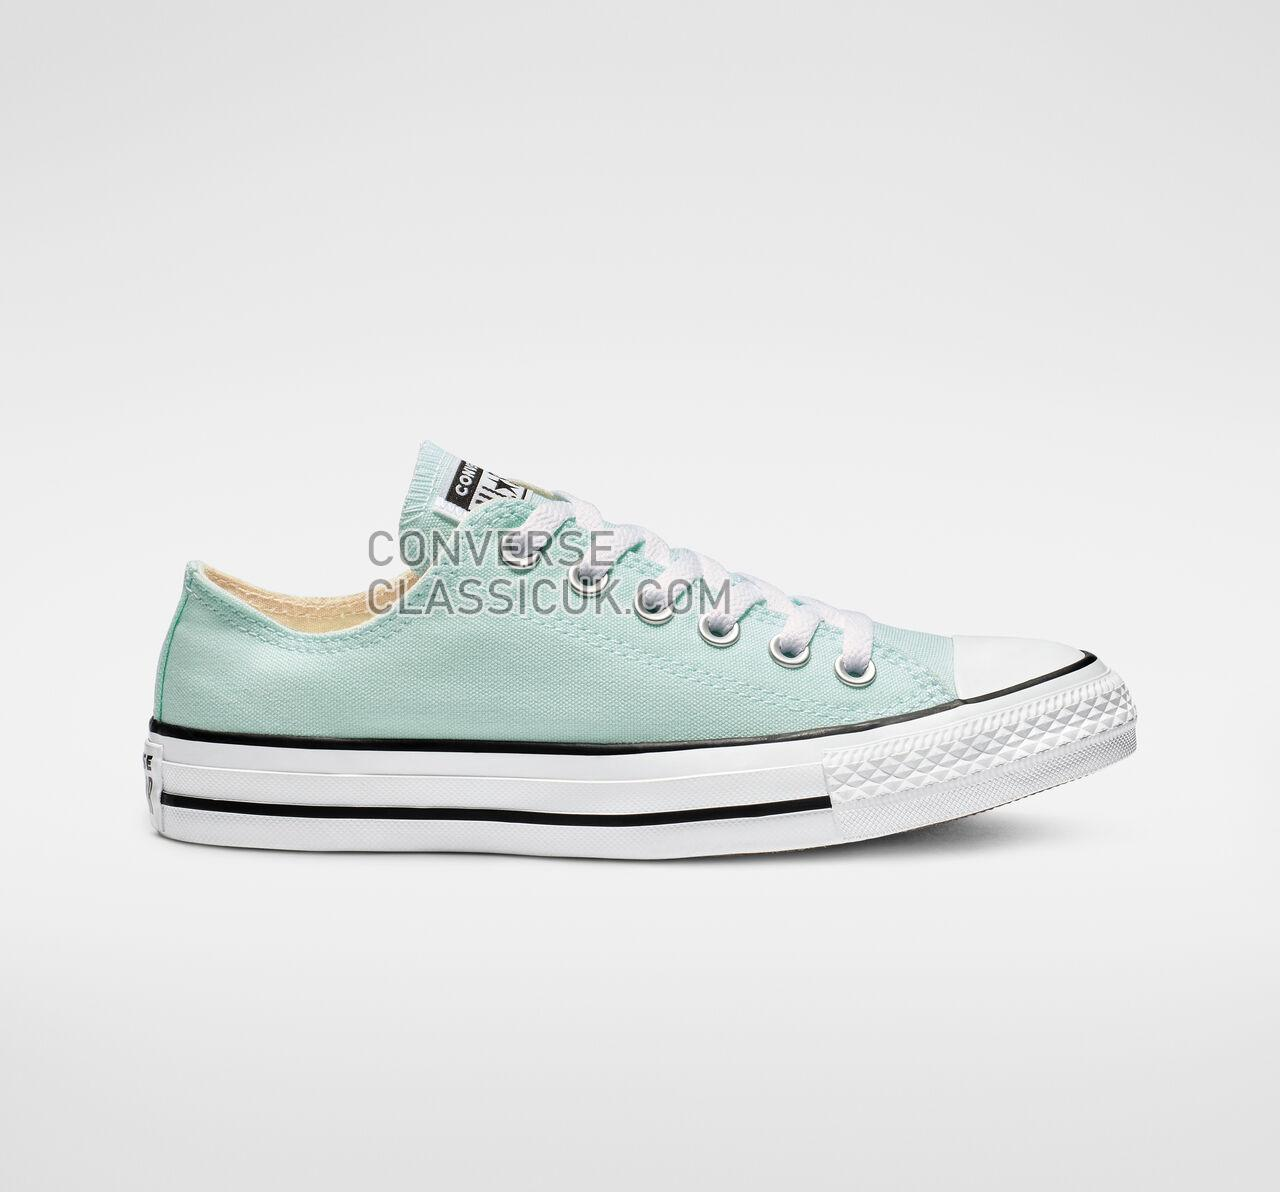 Converse Chuck Taylor All Star Seasonal Color Low Top Mens Womens Unisex 163357F Teal Tint Shoes